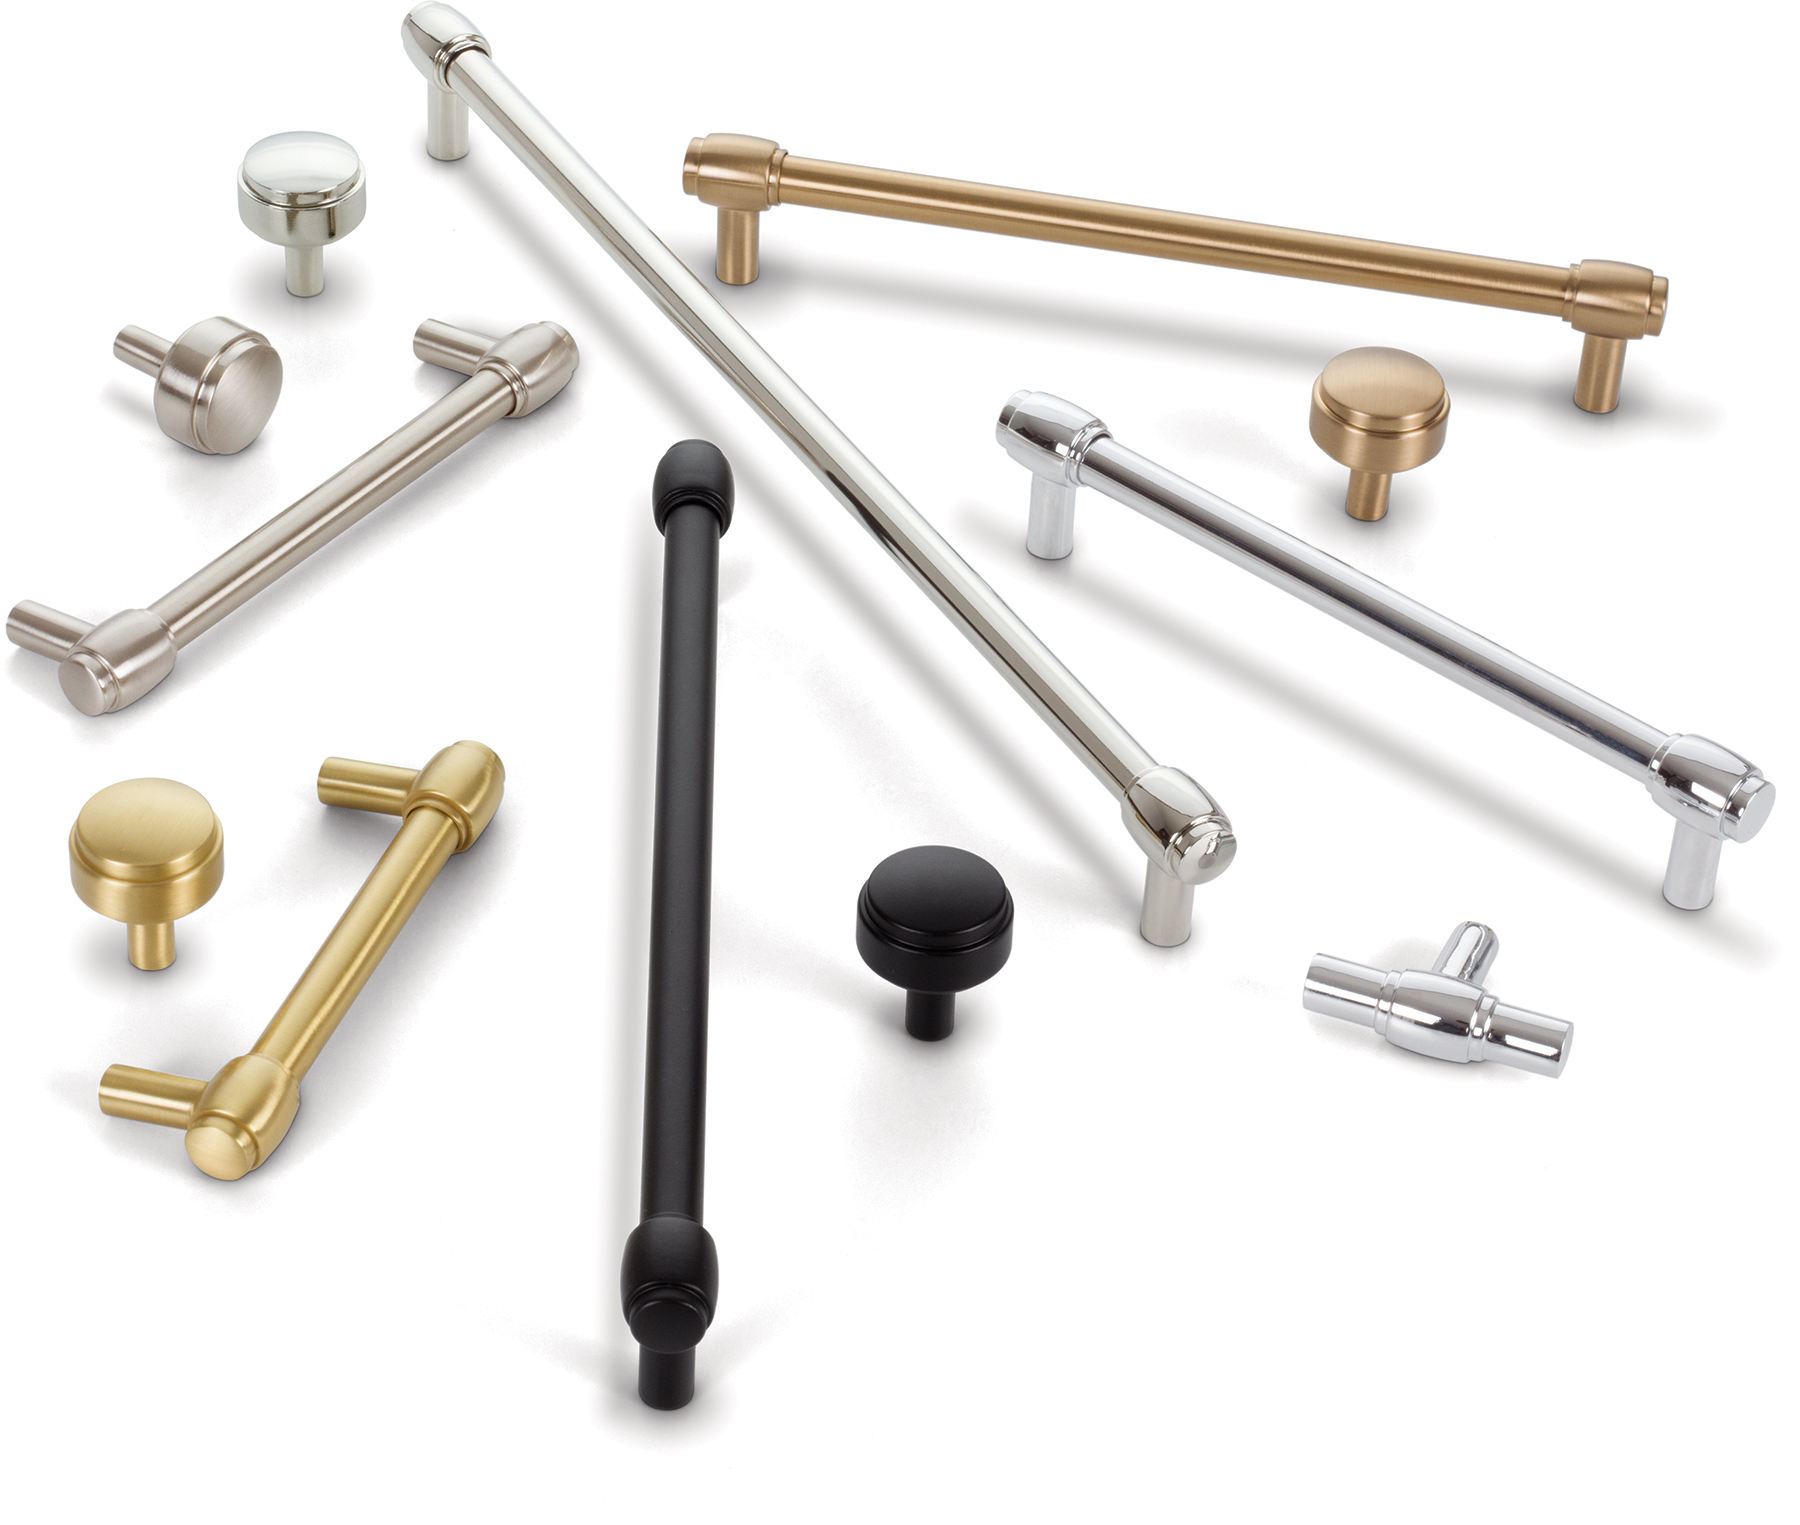 Buy Strong and Easy To Clean Knobs and Pulls for Cabinets